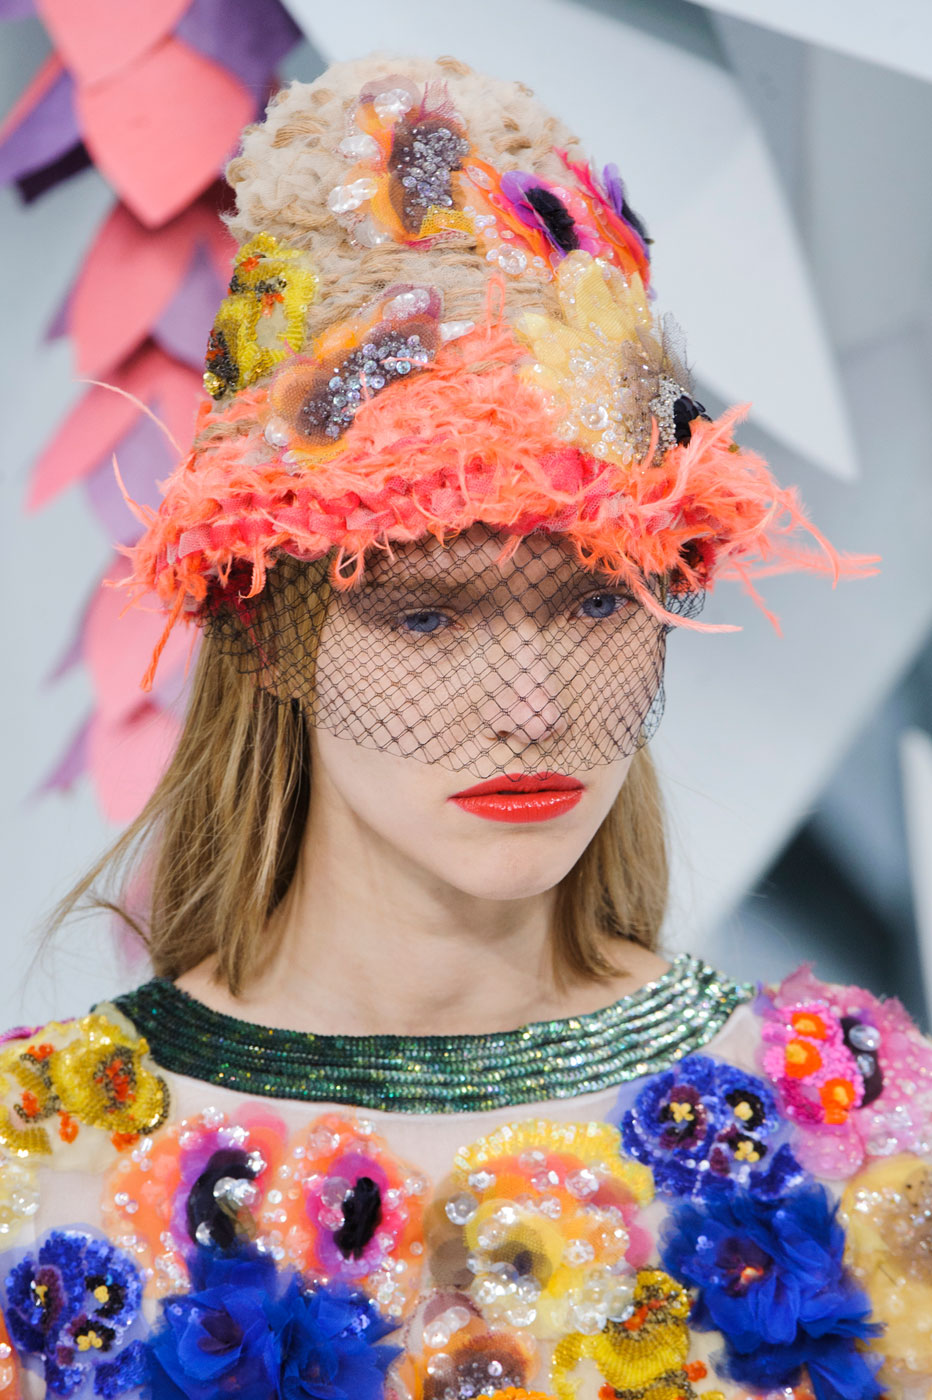 Chanel-fashion-runway-show-close-ups-haute-couture-paris-spring-summer-2015-the-impression-095